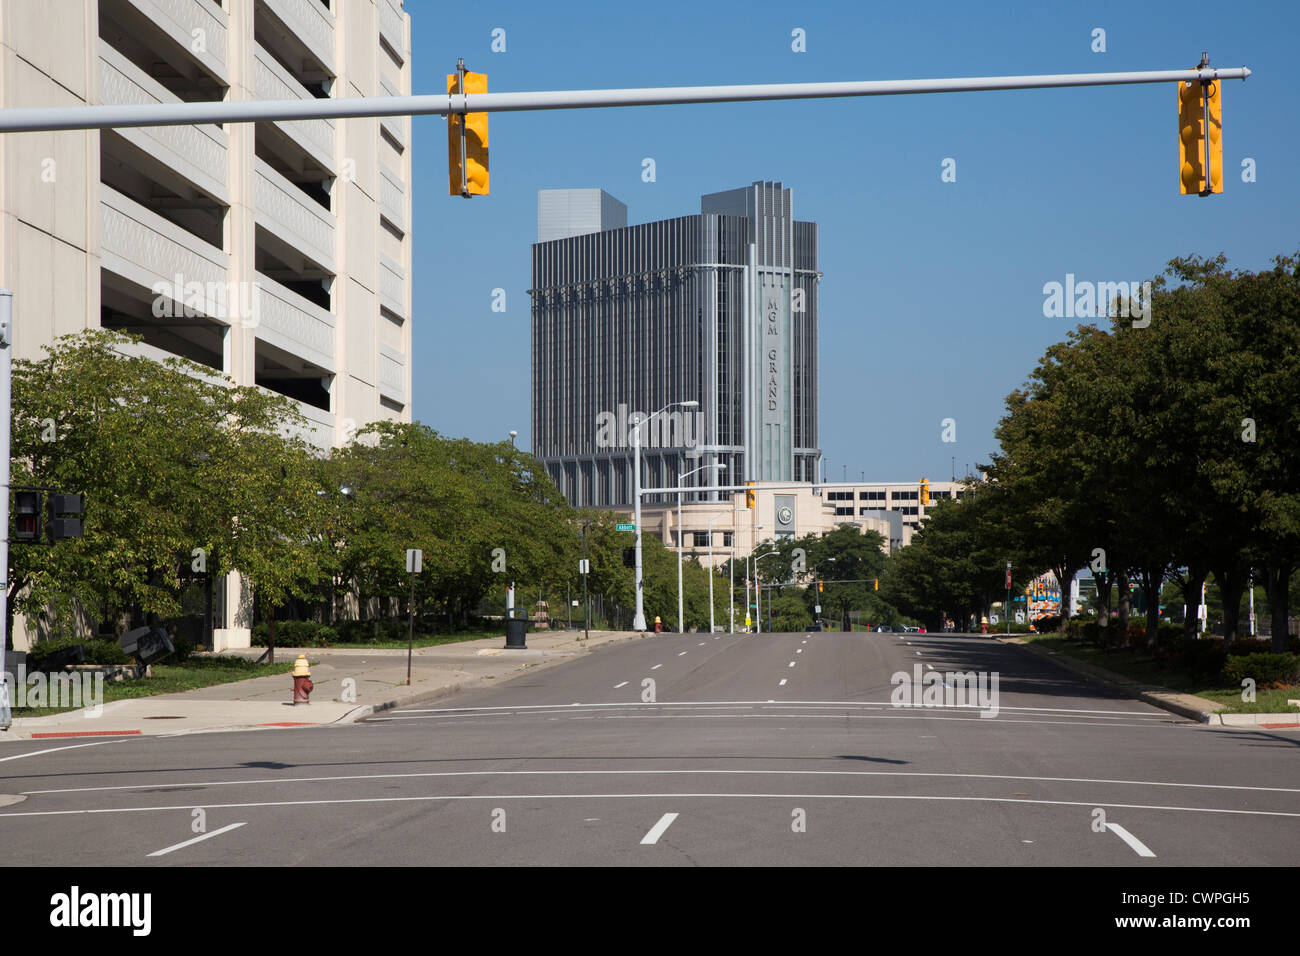 Detroit, Michigan - The MGM Grand Casino and Hotel. - Stock Image